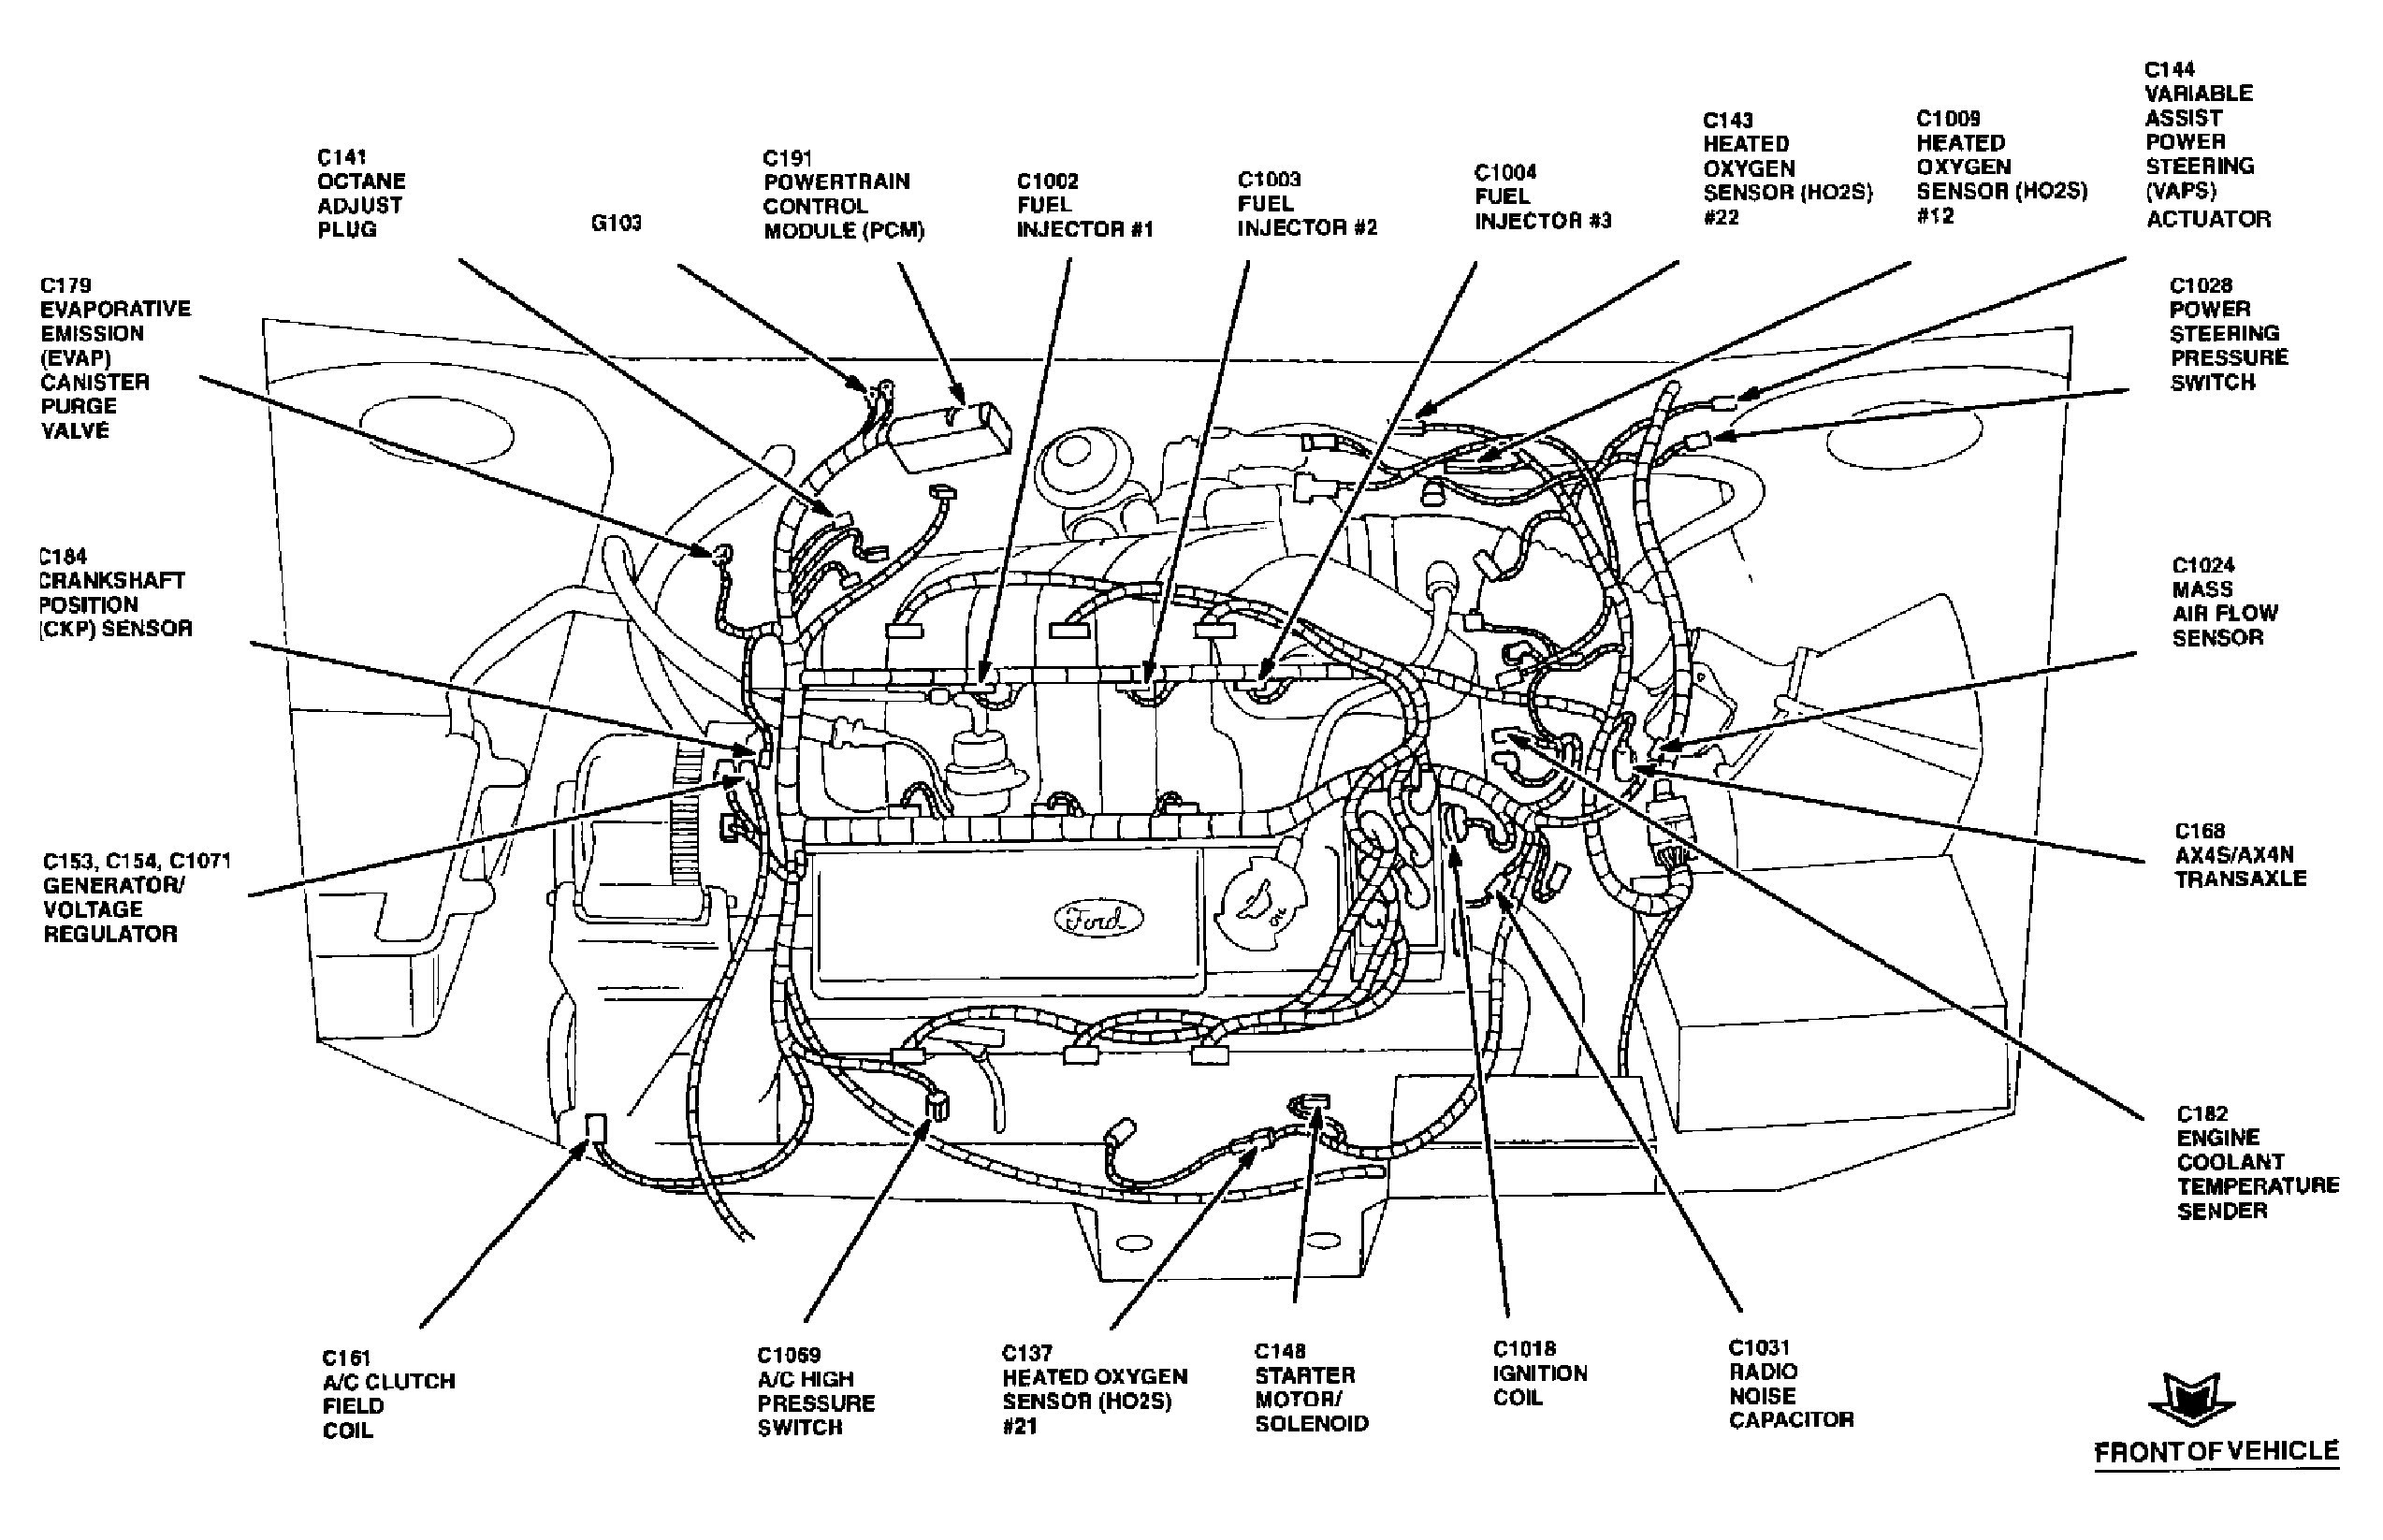 Aerostar Engine Diagram